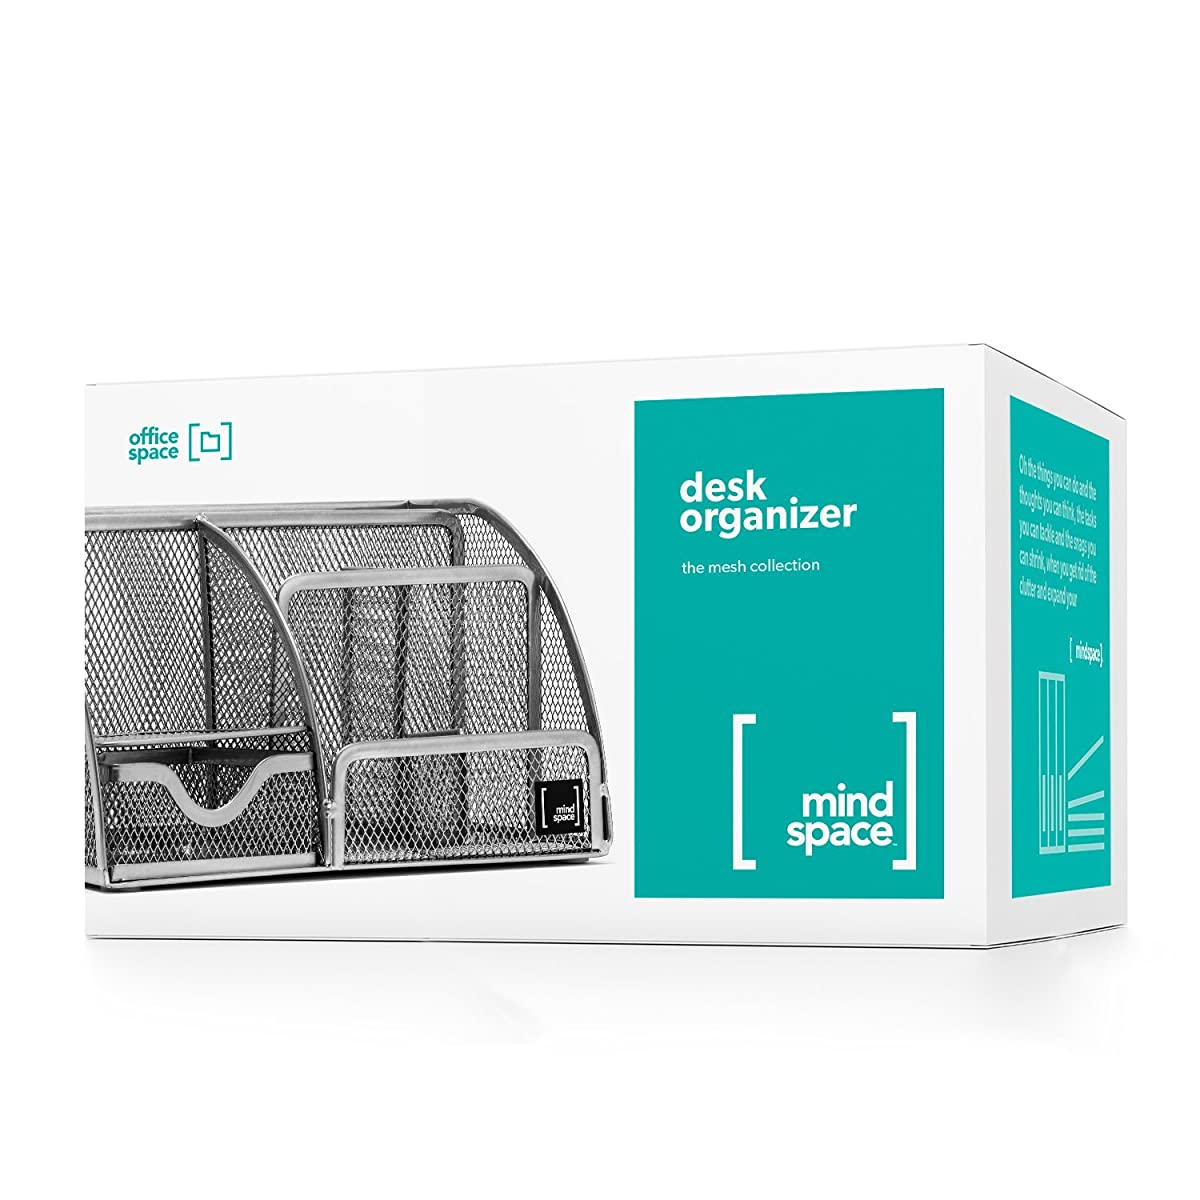 Mindspace Office Desk Organizer with 6 Compartments + Drawer + Pen & Pencil Holder   The Mesh Collection, Silver